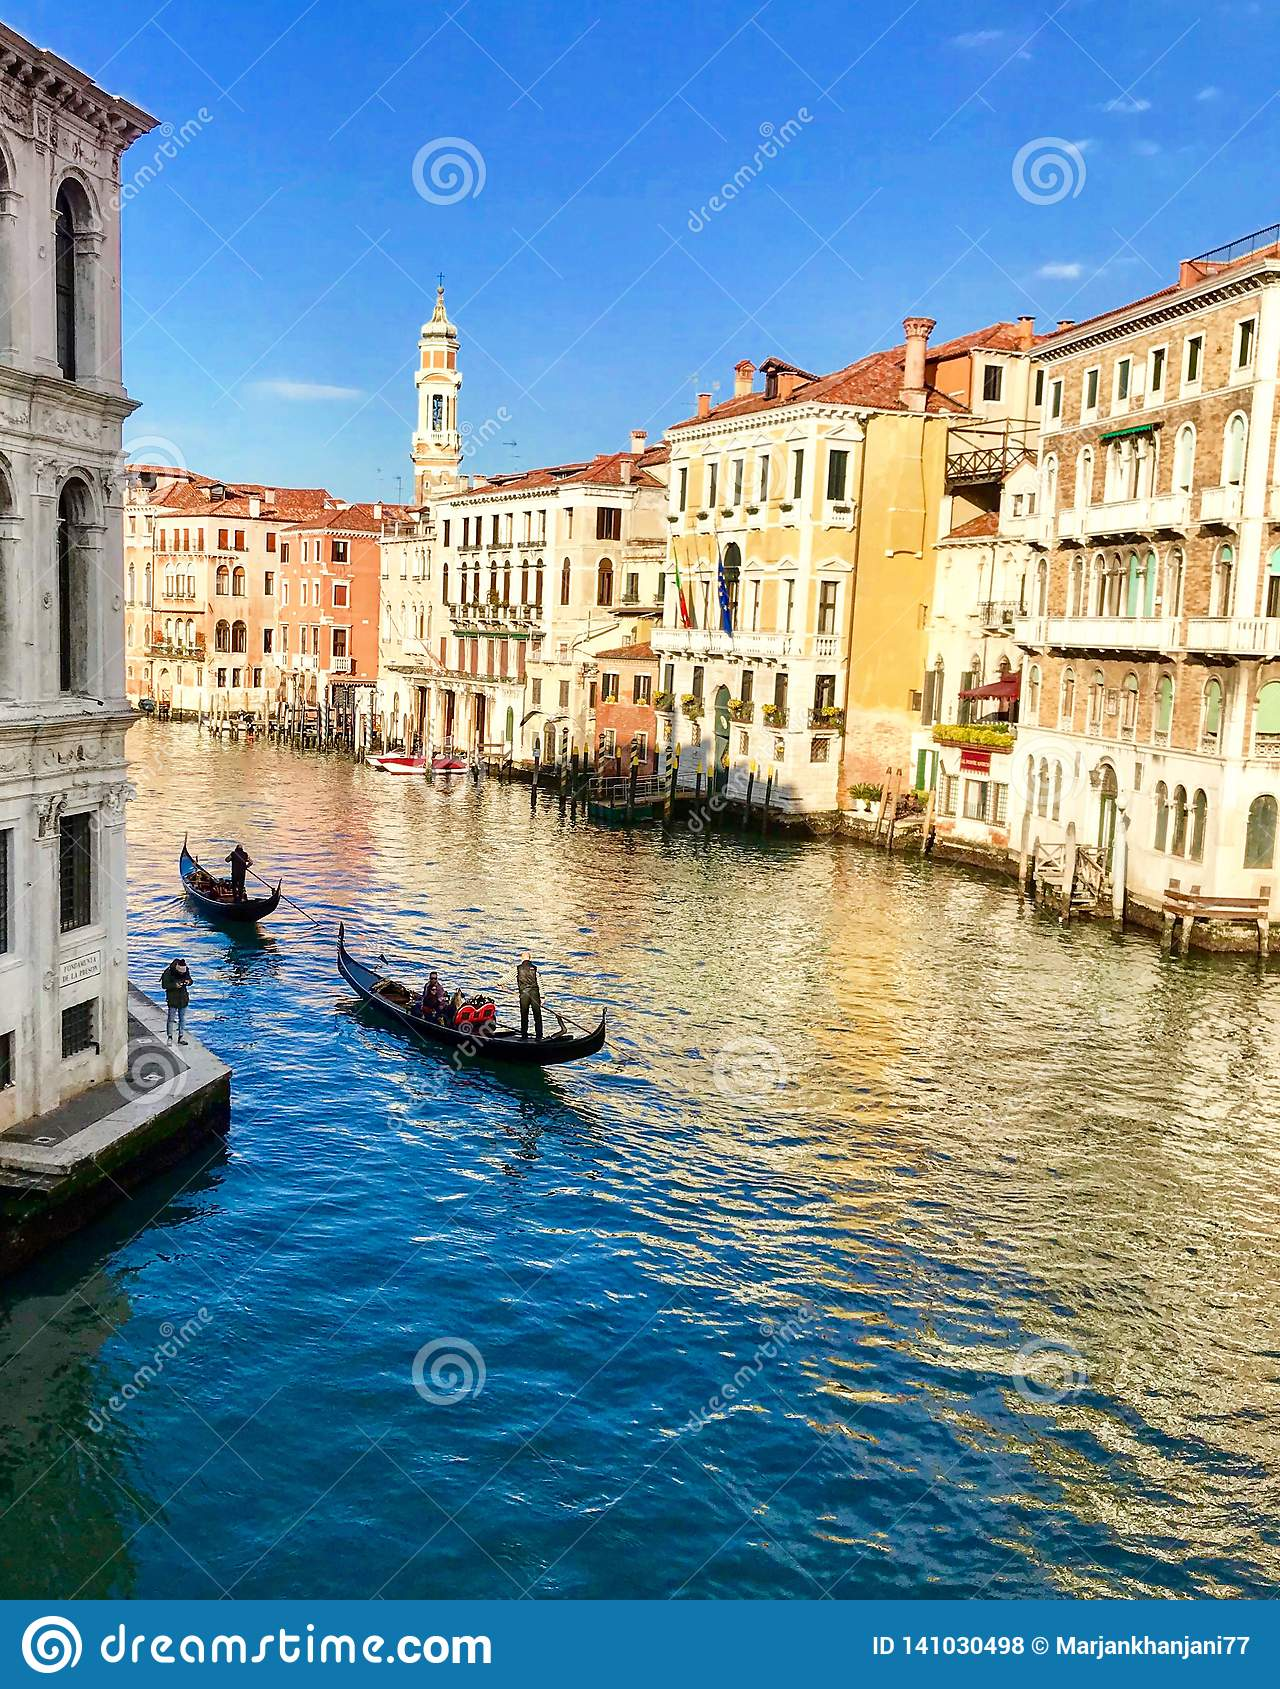 The Canal Grande in Venice, Italy.